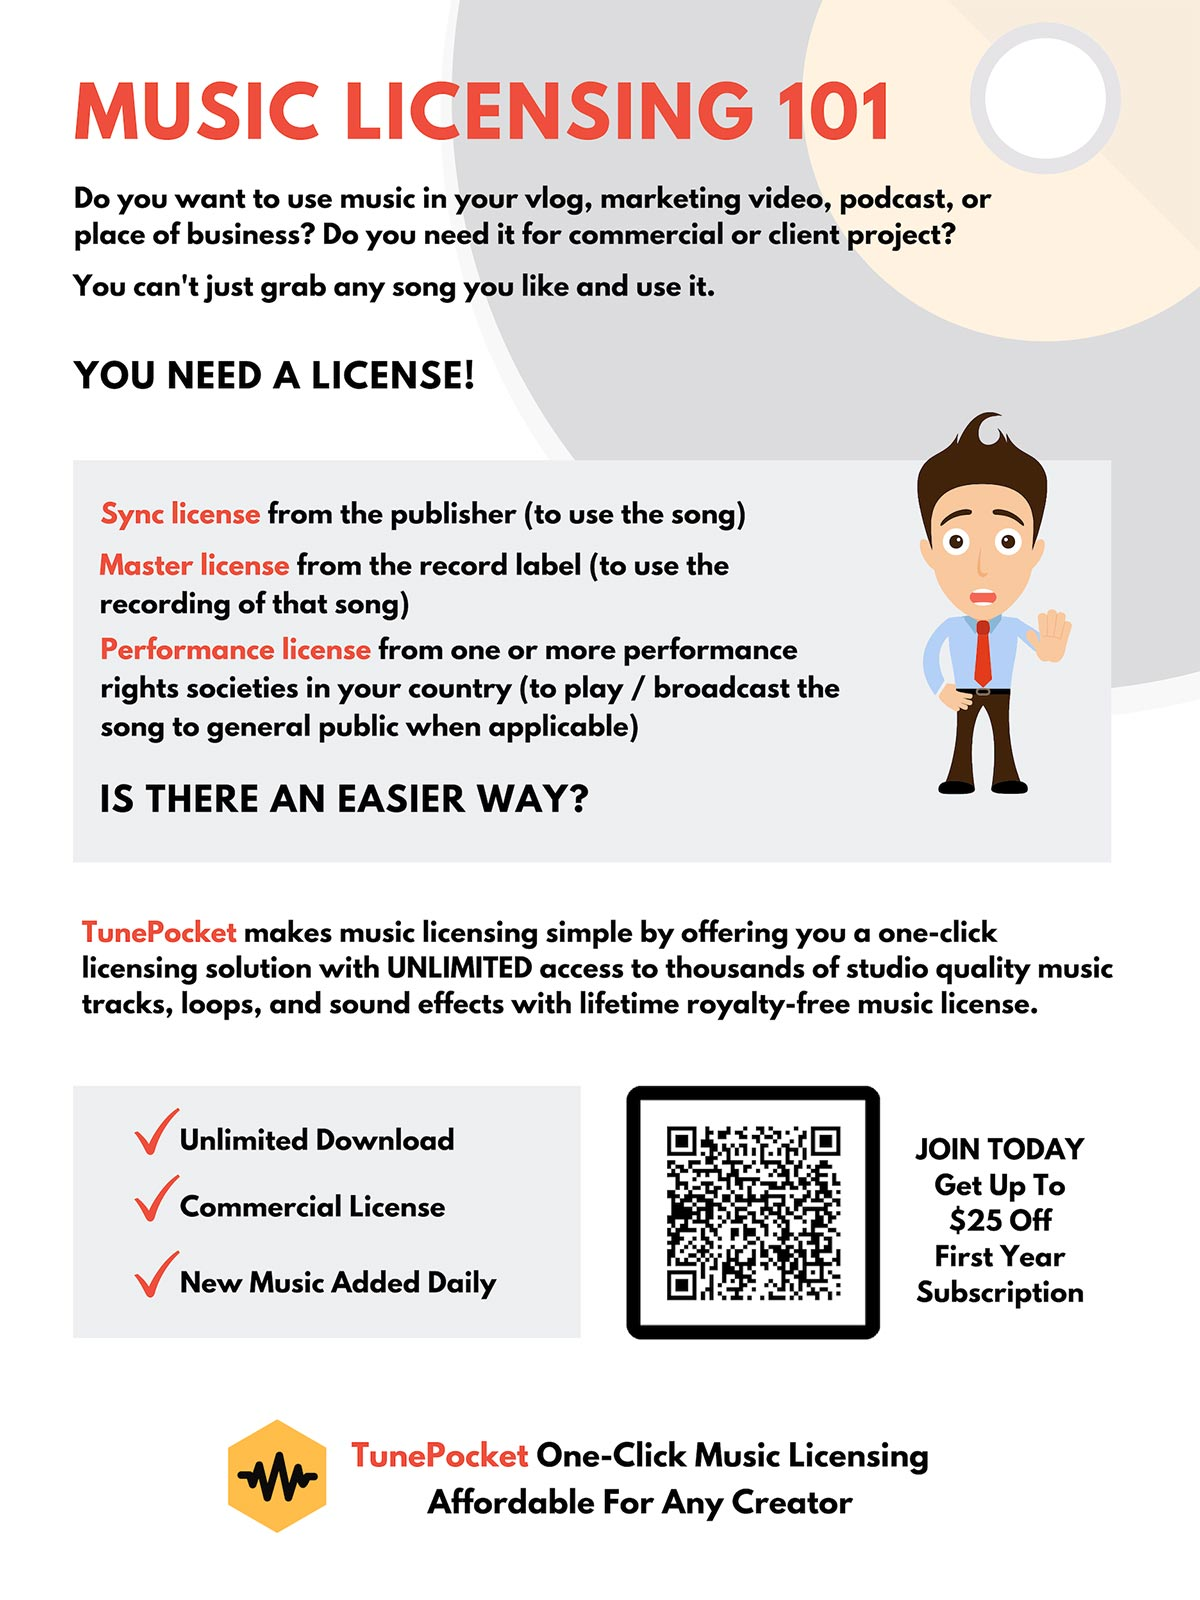 Music Licensing 101 Infographic - TunePocket